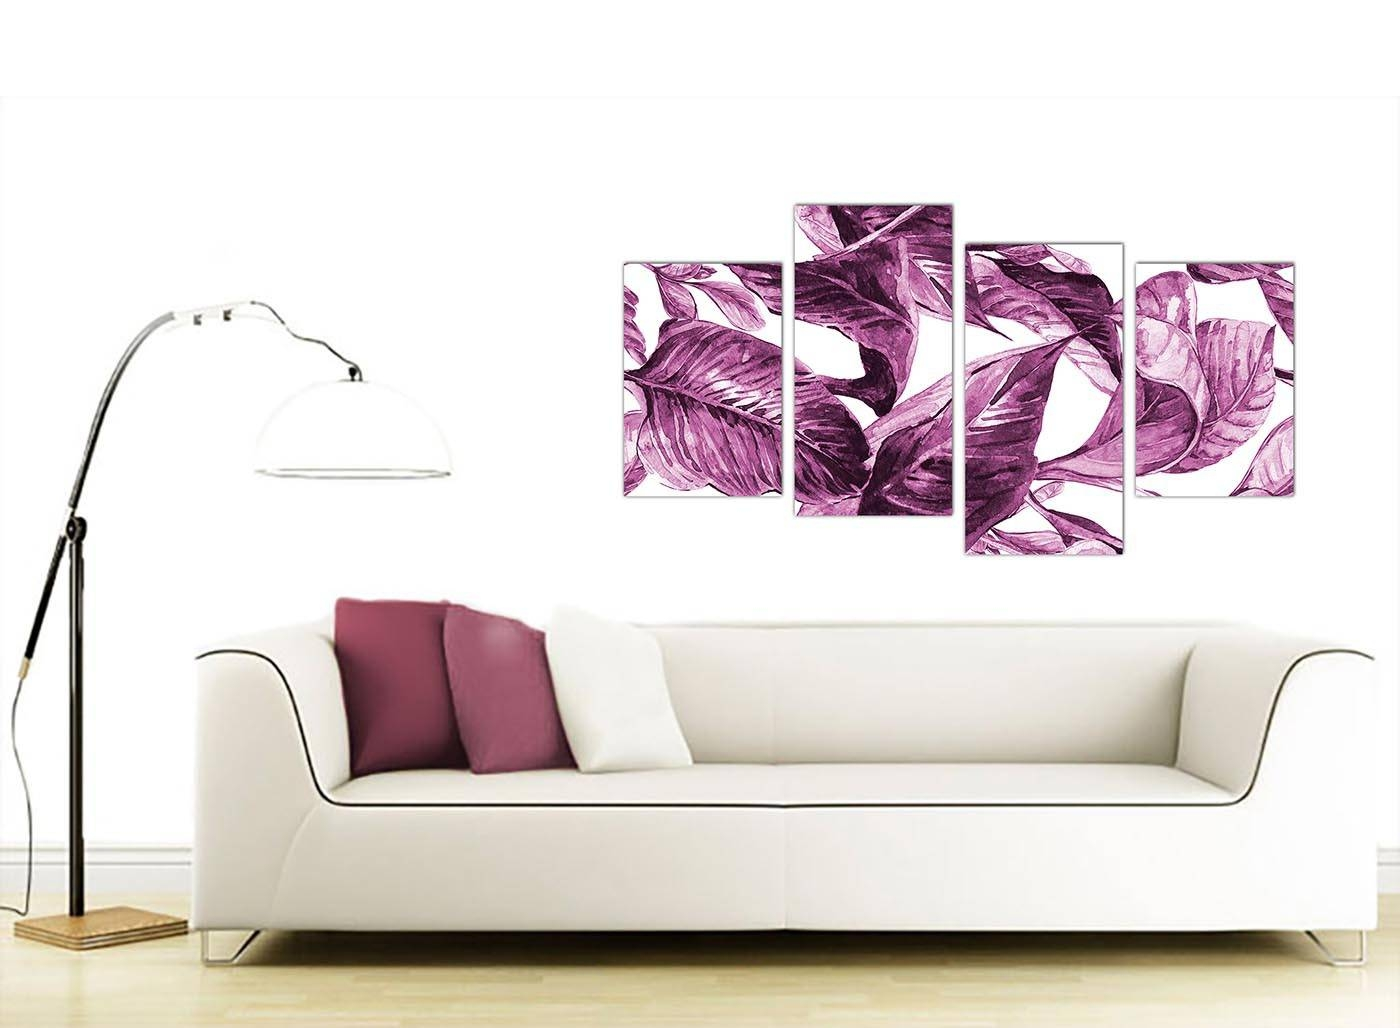 Large Plum Aubergine White Tropical Leaves Canvas Wall Art – Multi With Regard To Most Recent Aubergine Wall Art (View 12 of 20)